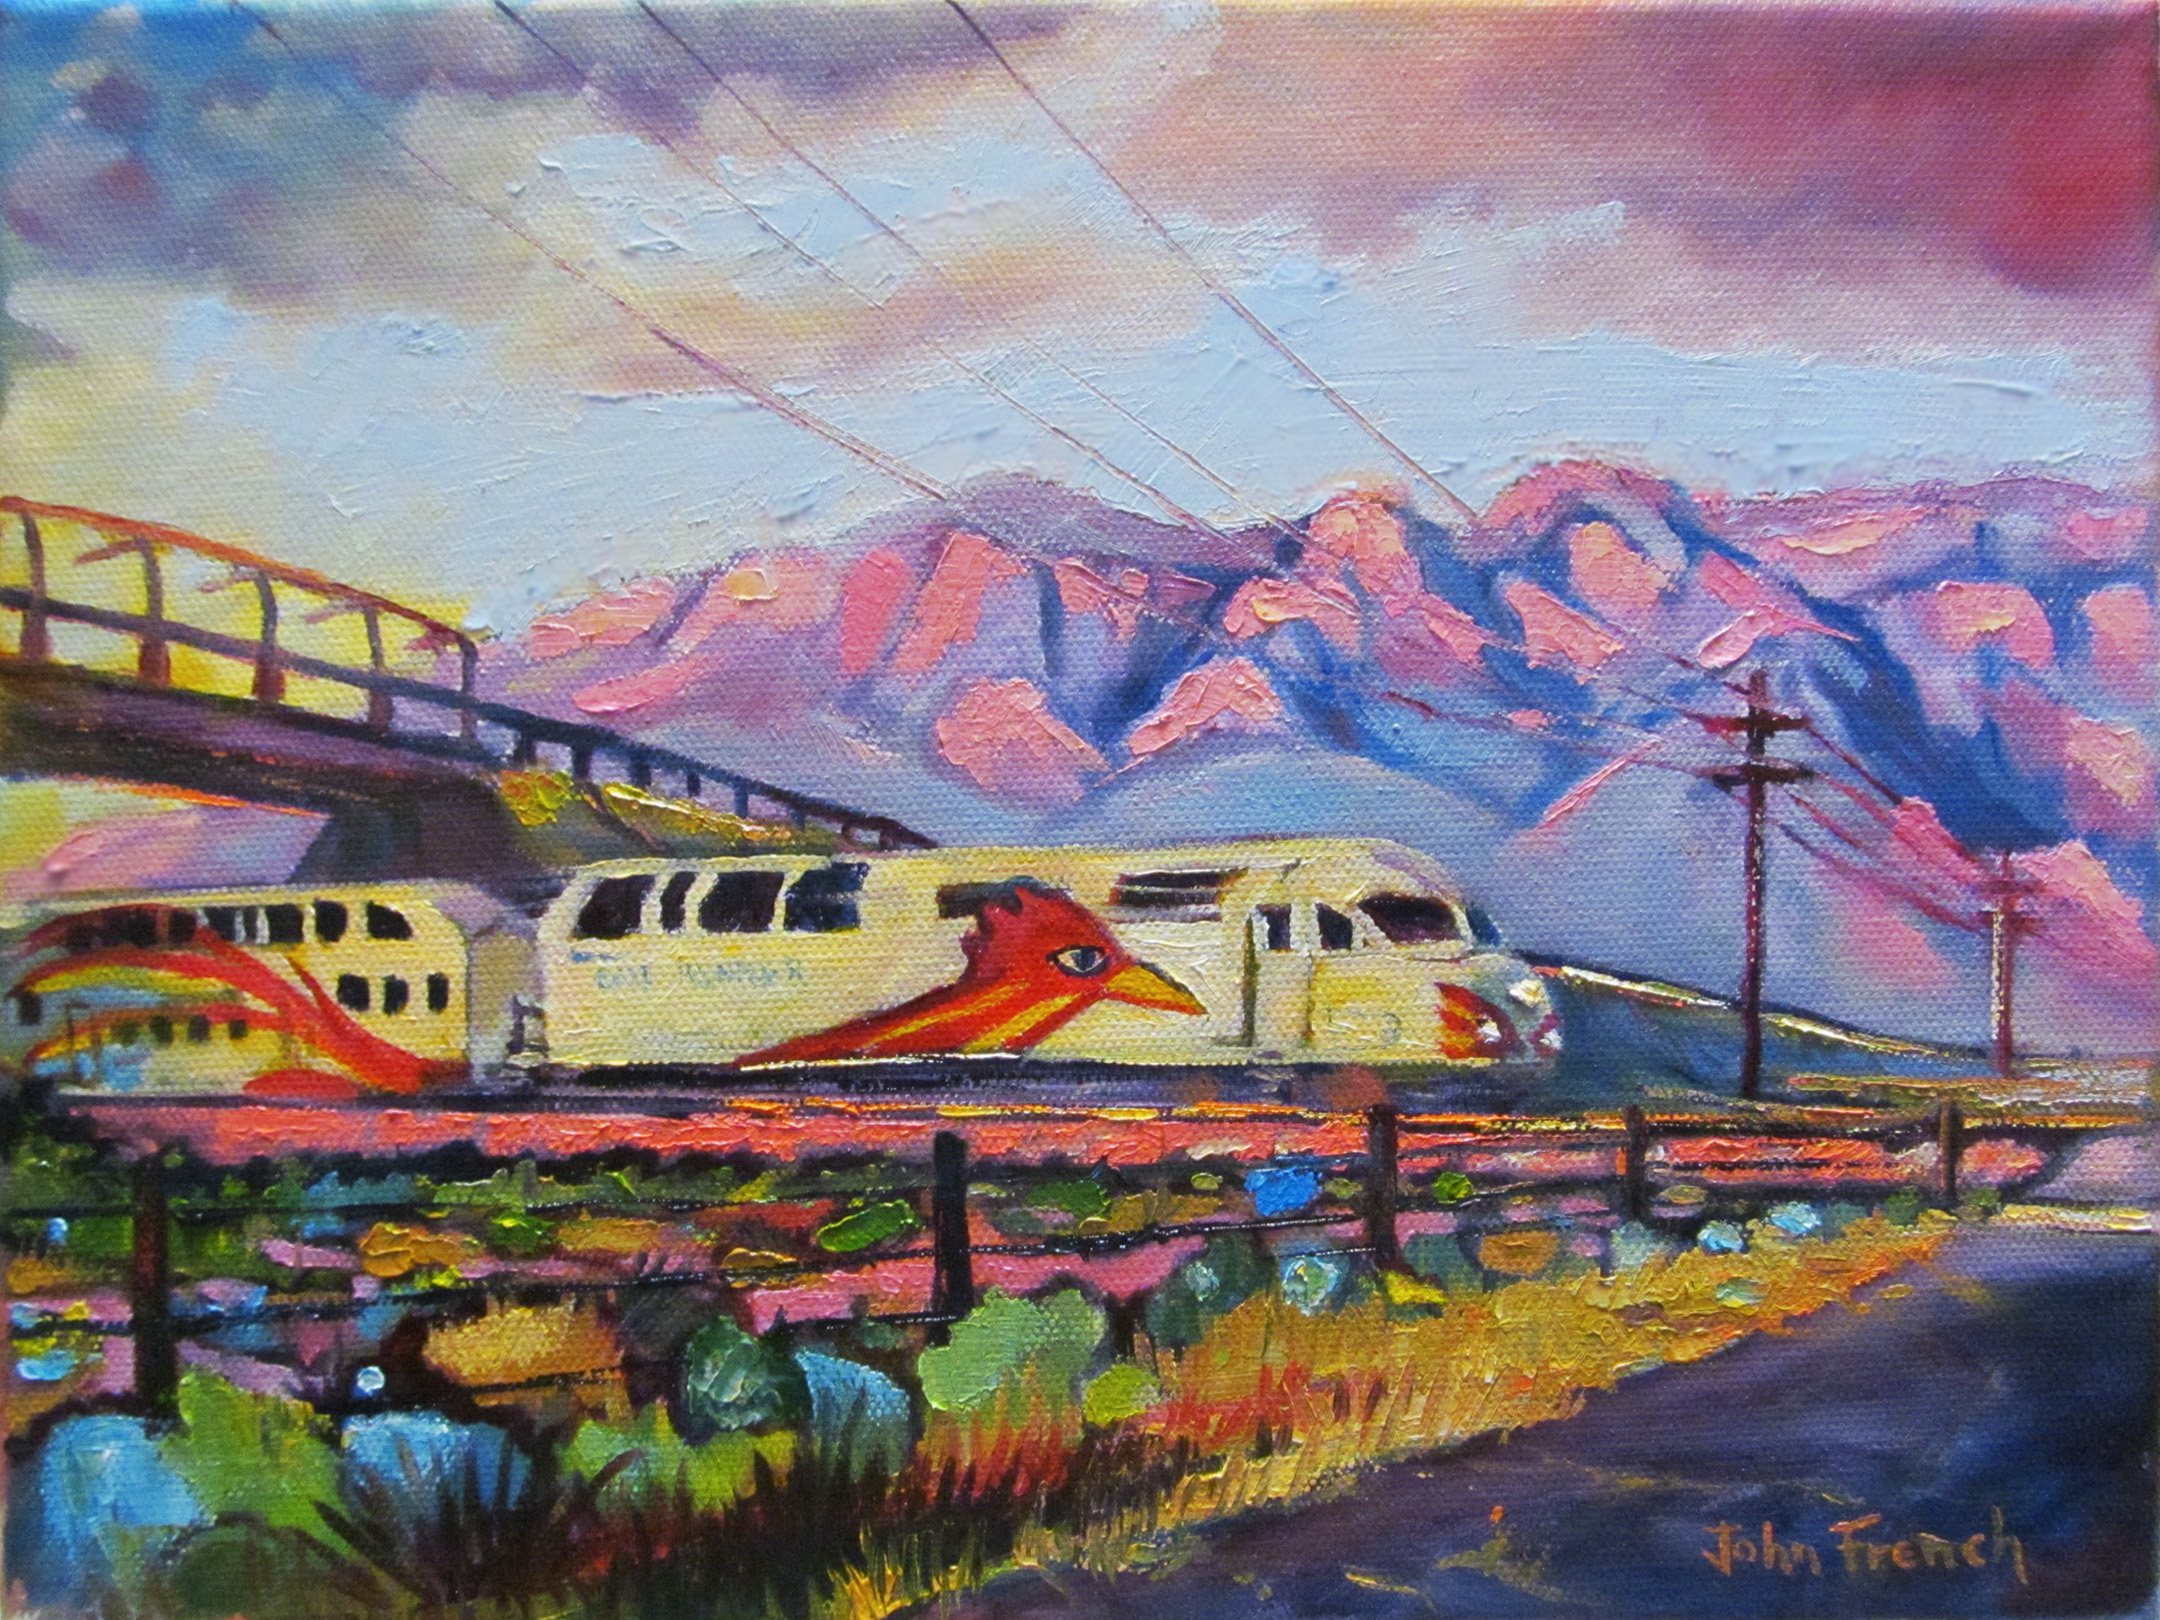 New Mexico art, train, rail runner, sandia mountains,